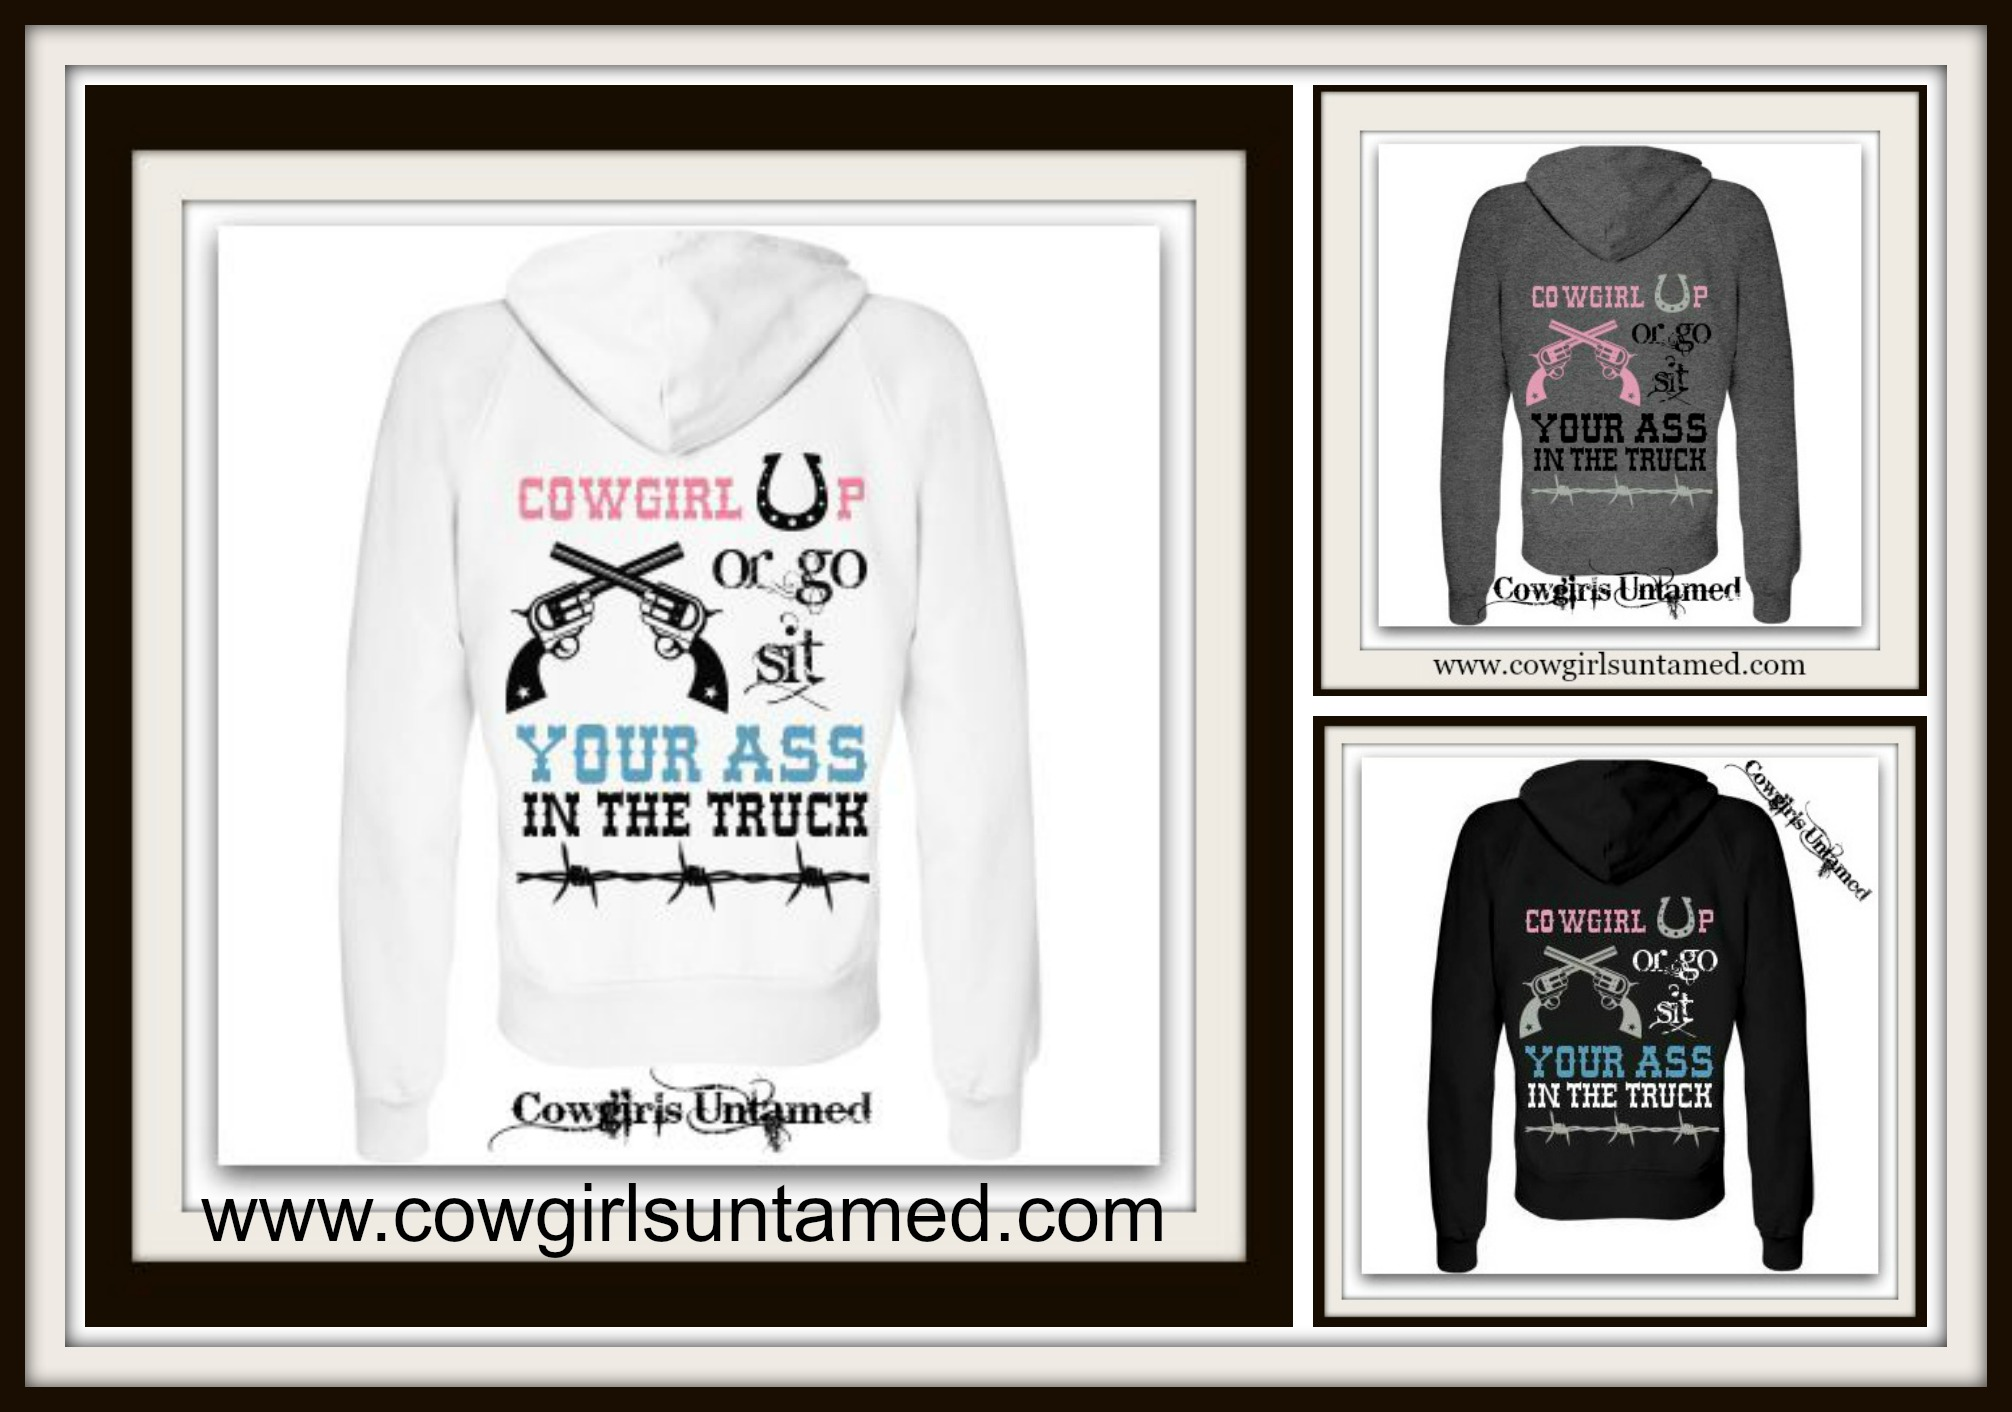 """COWGIRL ATTITUDE SWEATSHIRT """"Cowgirl Up or Go Sit Your Ass In The Truck"""" Zip Up Western Hoodie"""